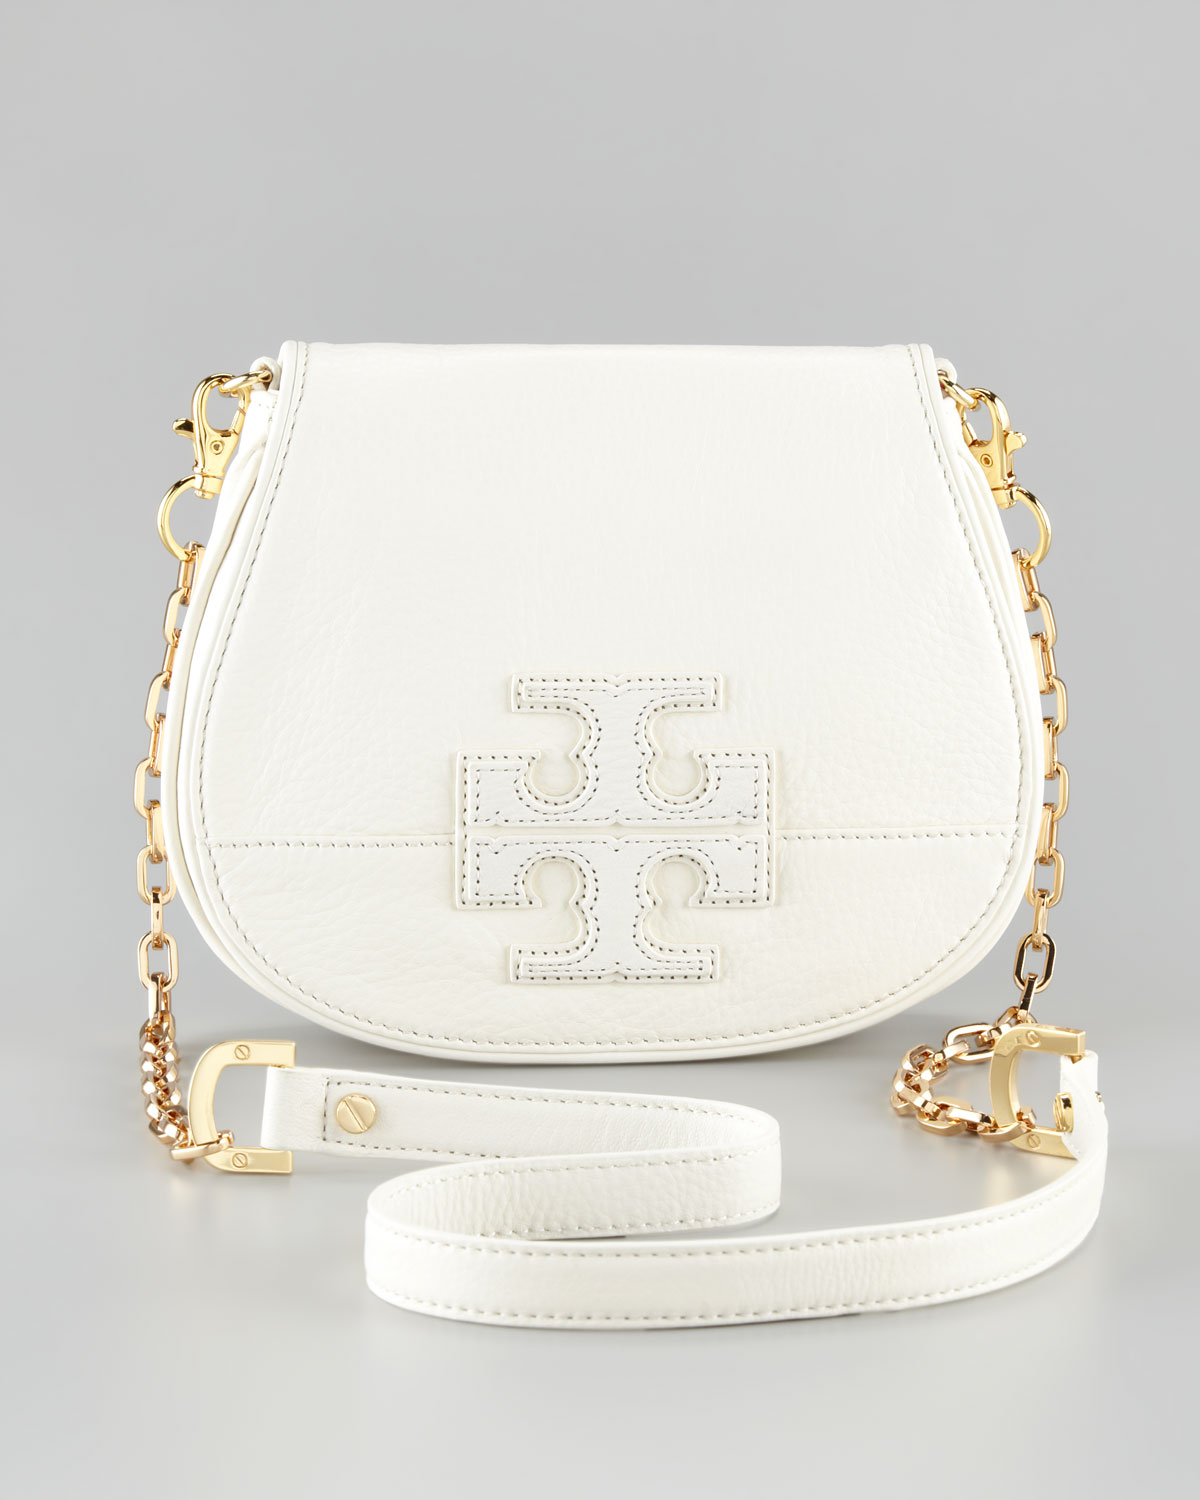 5db4d7fe0 Tory Burch Stacked Logo Crossbody Bag in White - Lyst